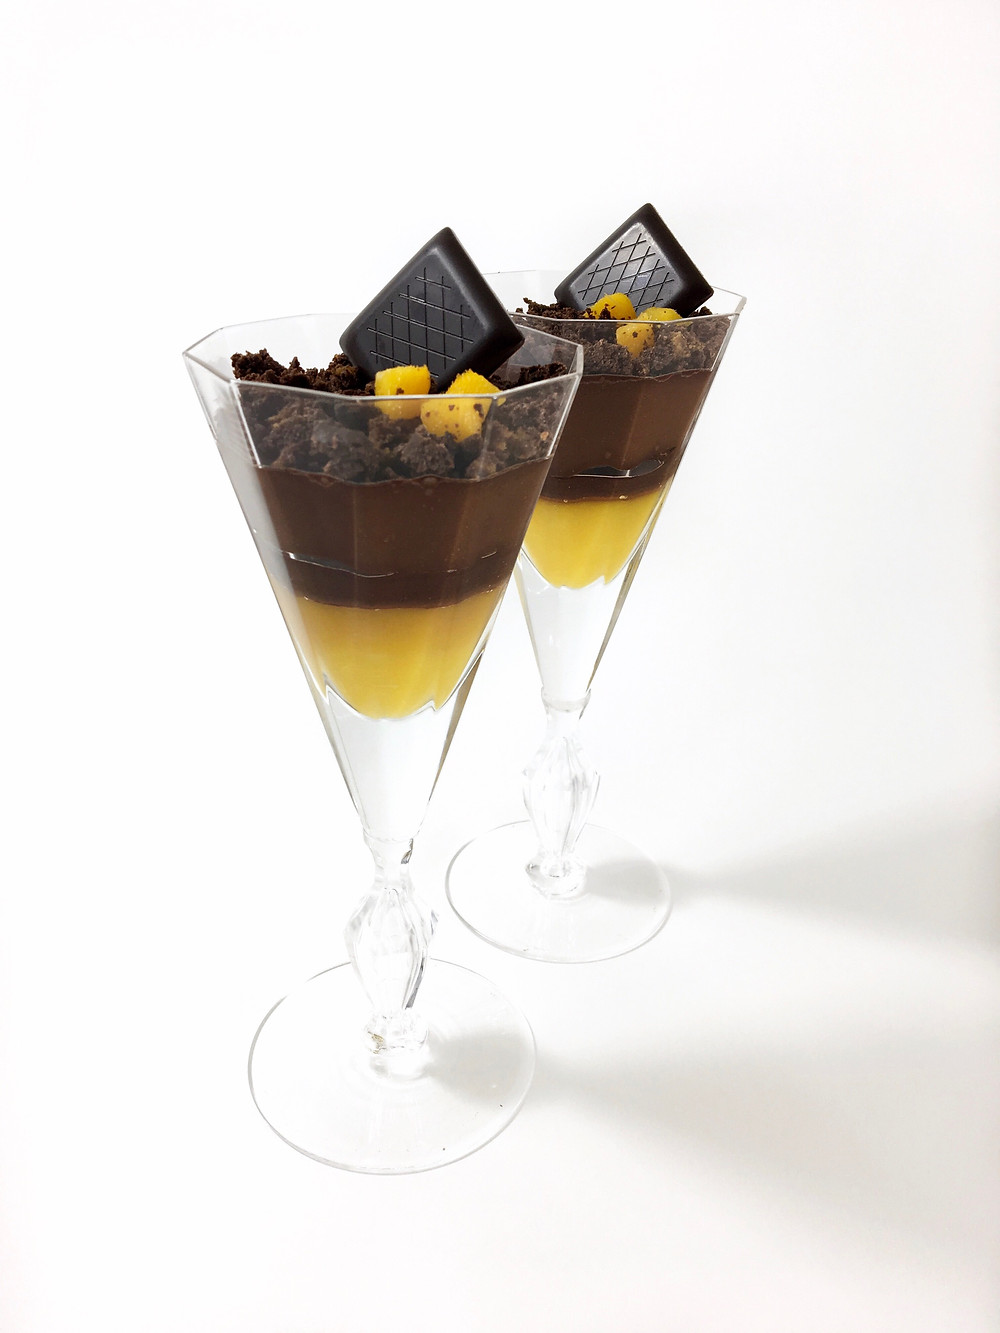 Vegan Chocolate Mango Verrine